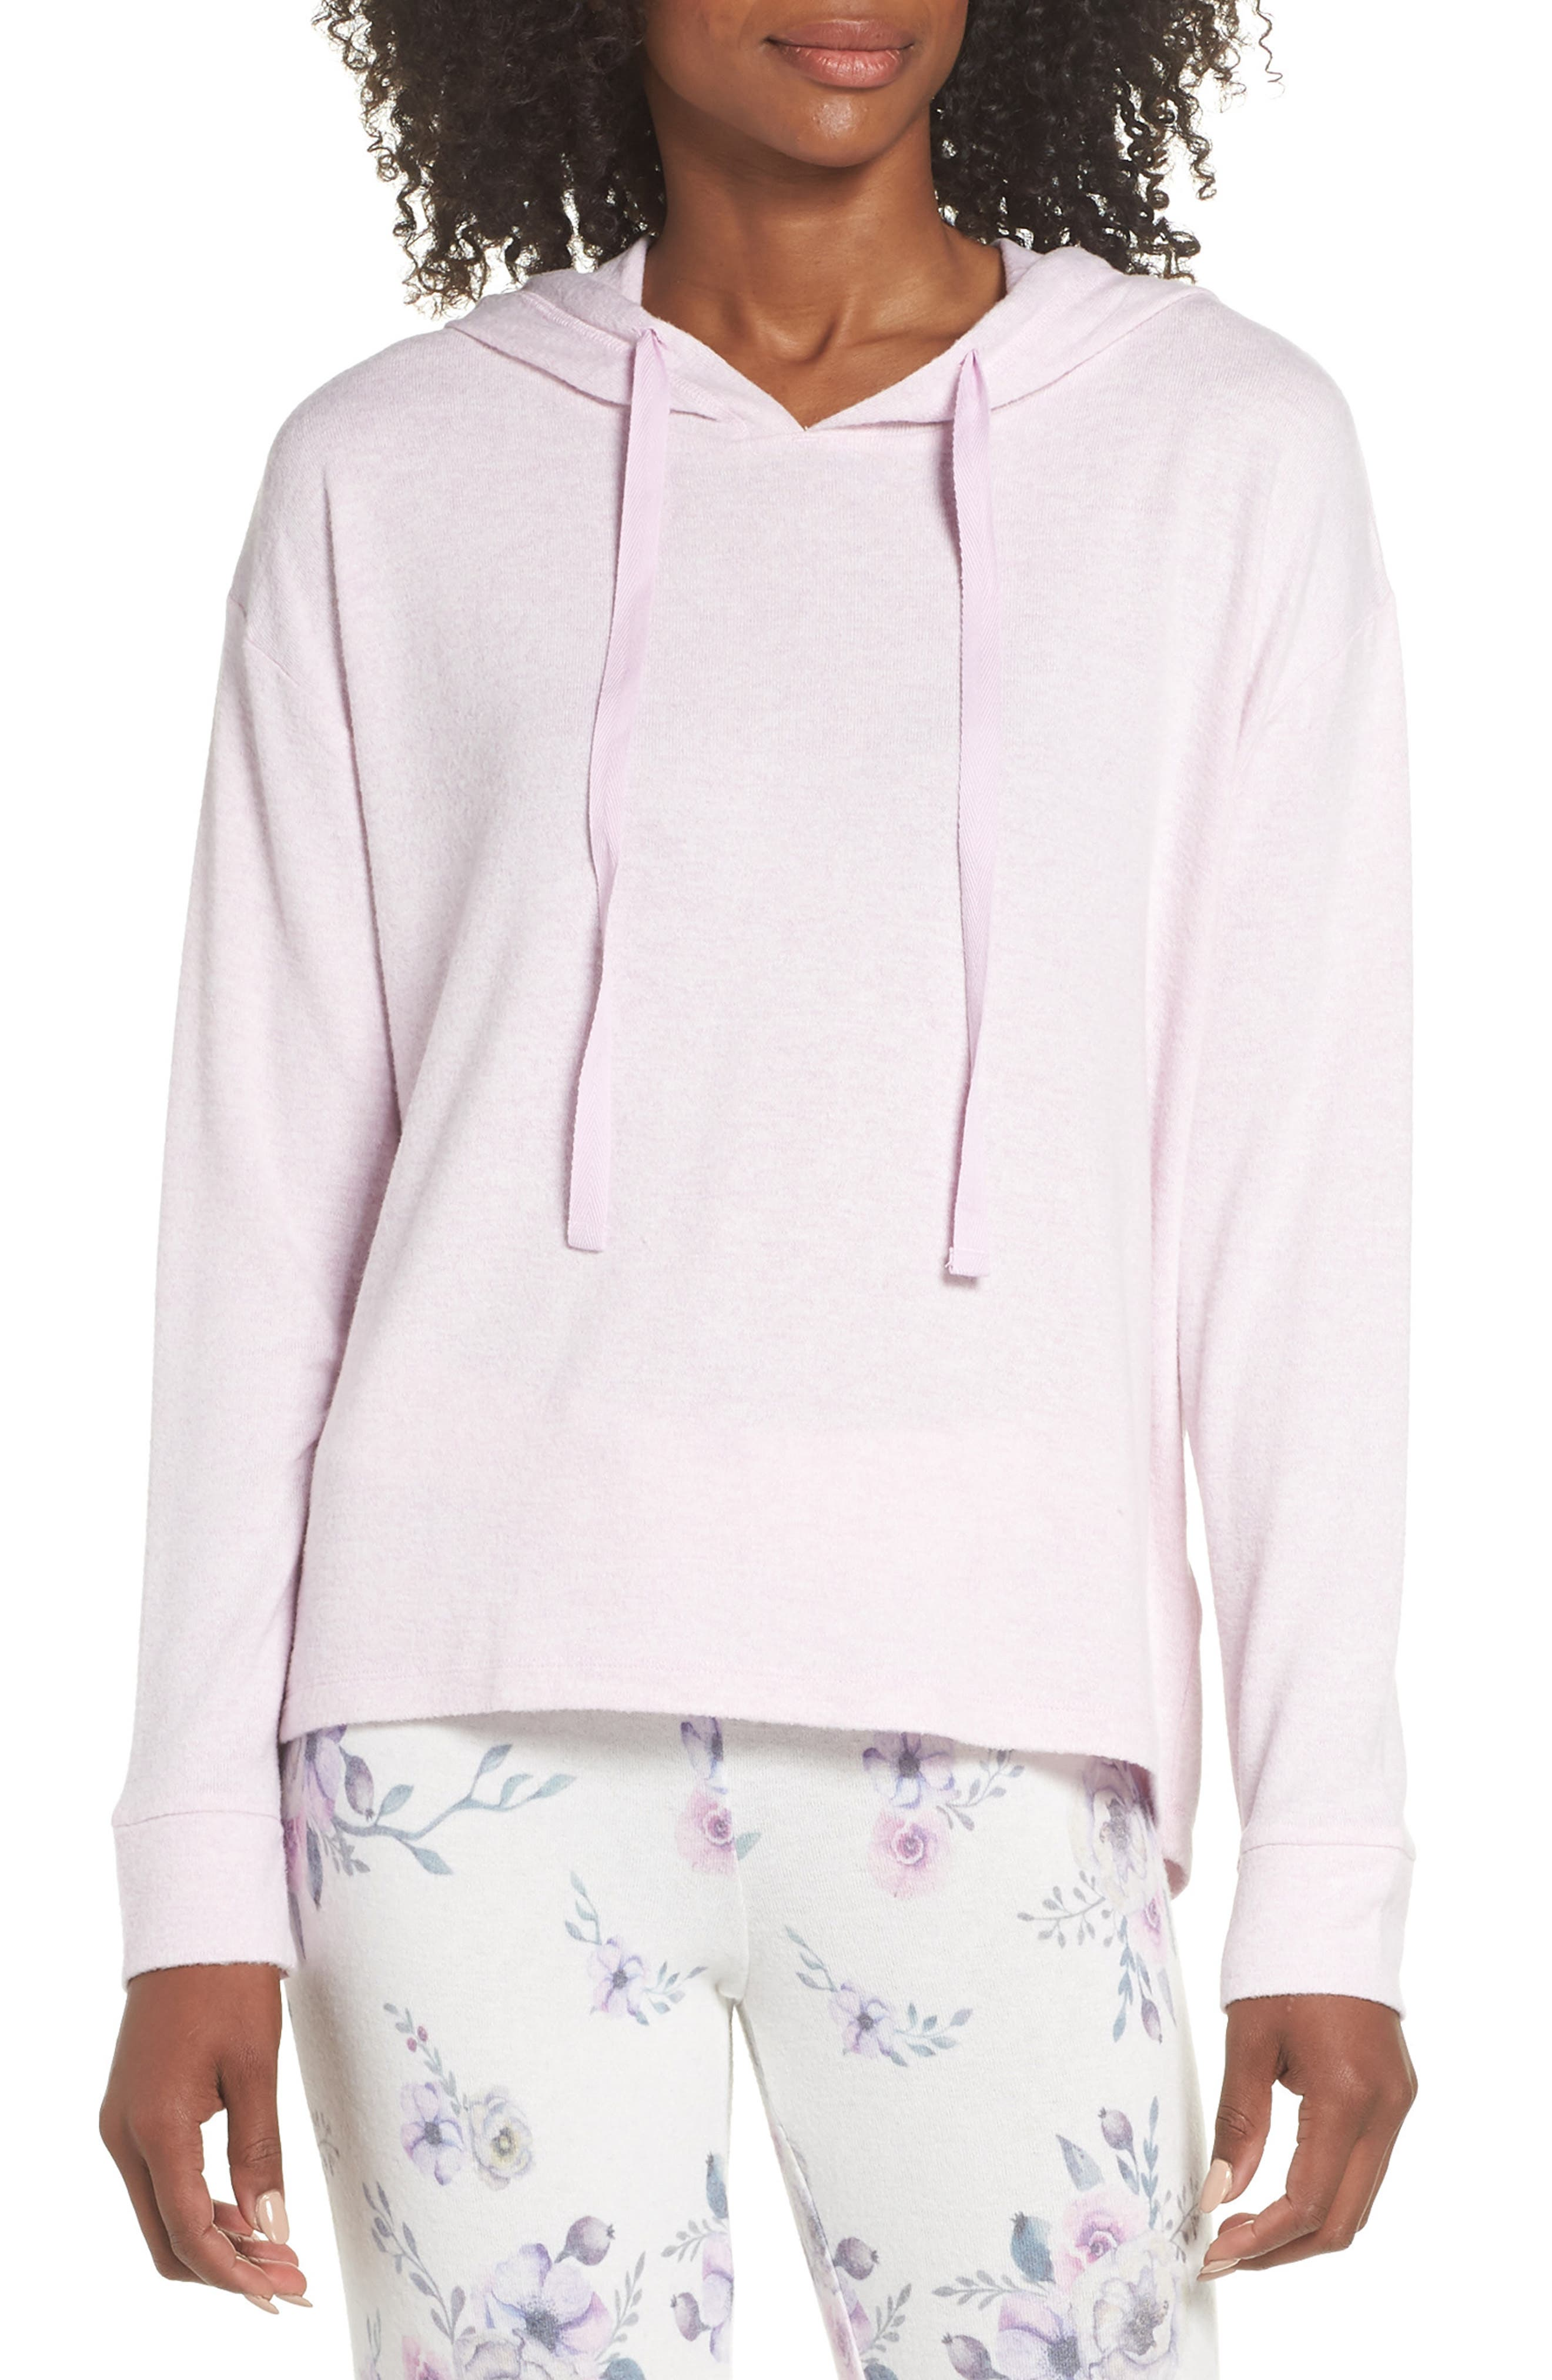 Pullover Hoodie,                         Main,                         color, LAVENDER